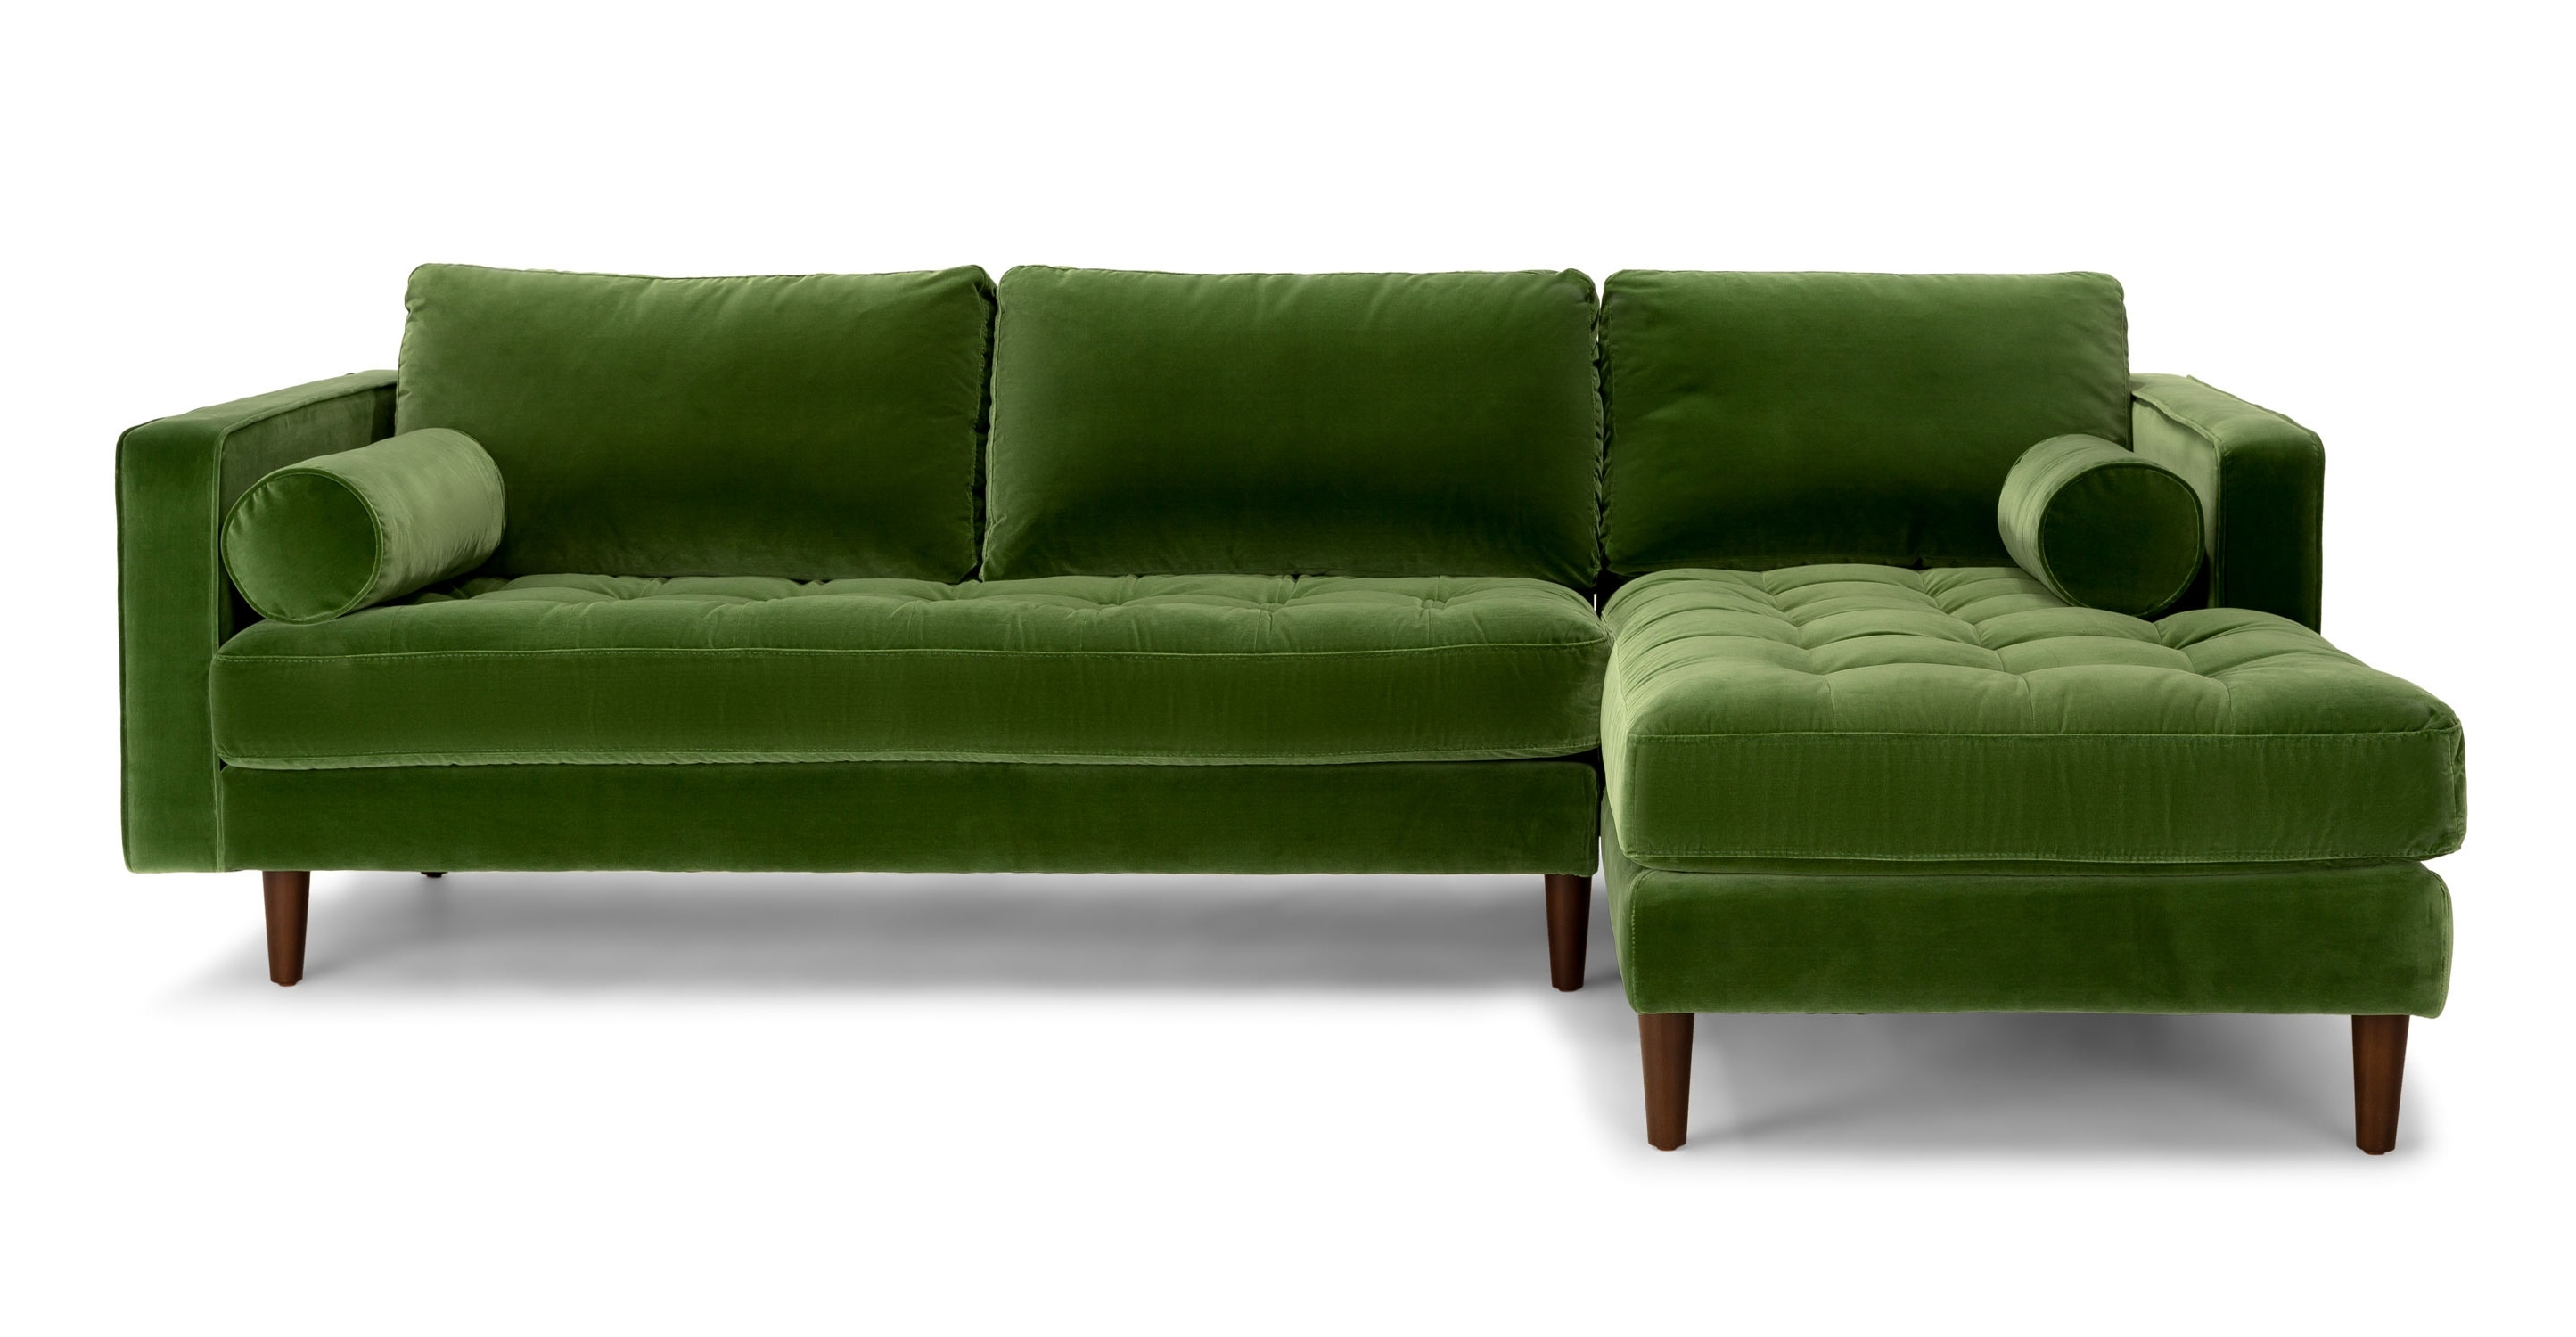 Best And Newest Green Sectional Sofas Inside Olive Green Chenille Fabrical Sofa Seafoam Emerald Leather Sage (View 6 of 20)